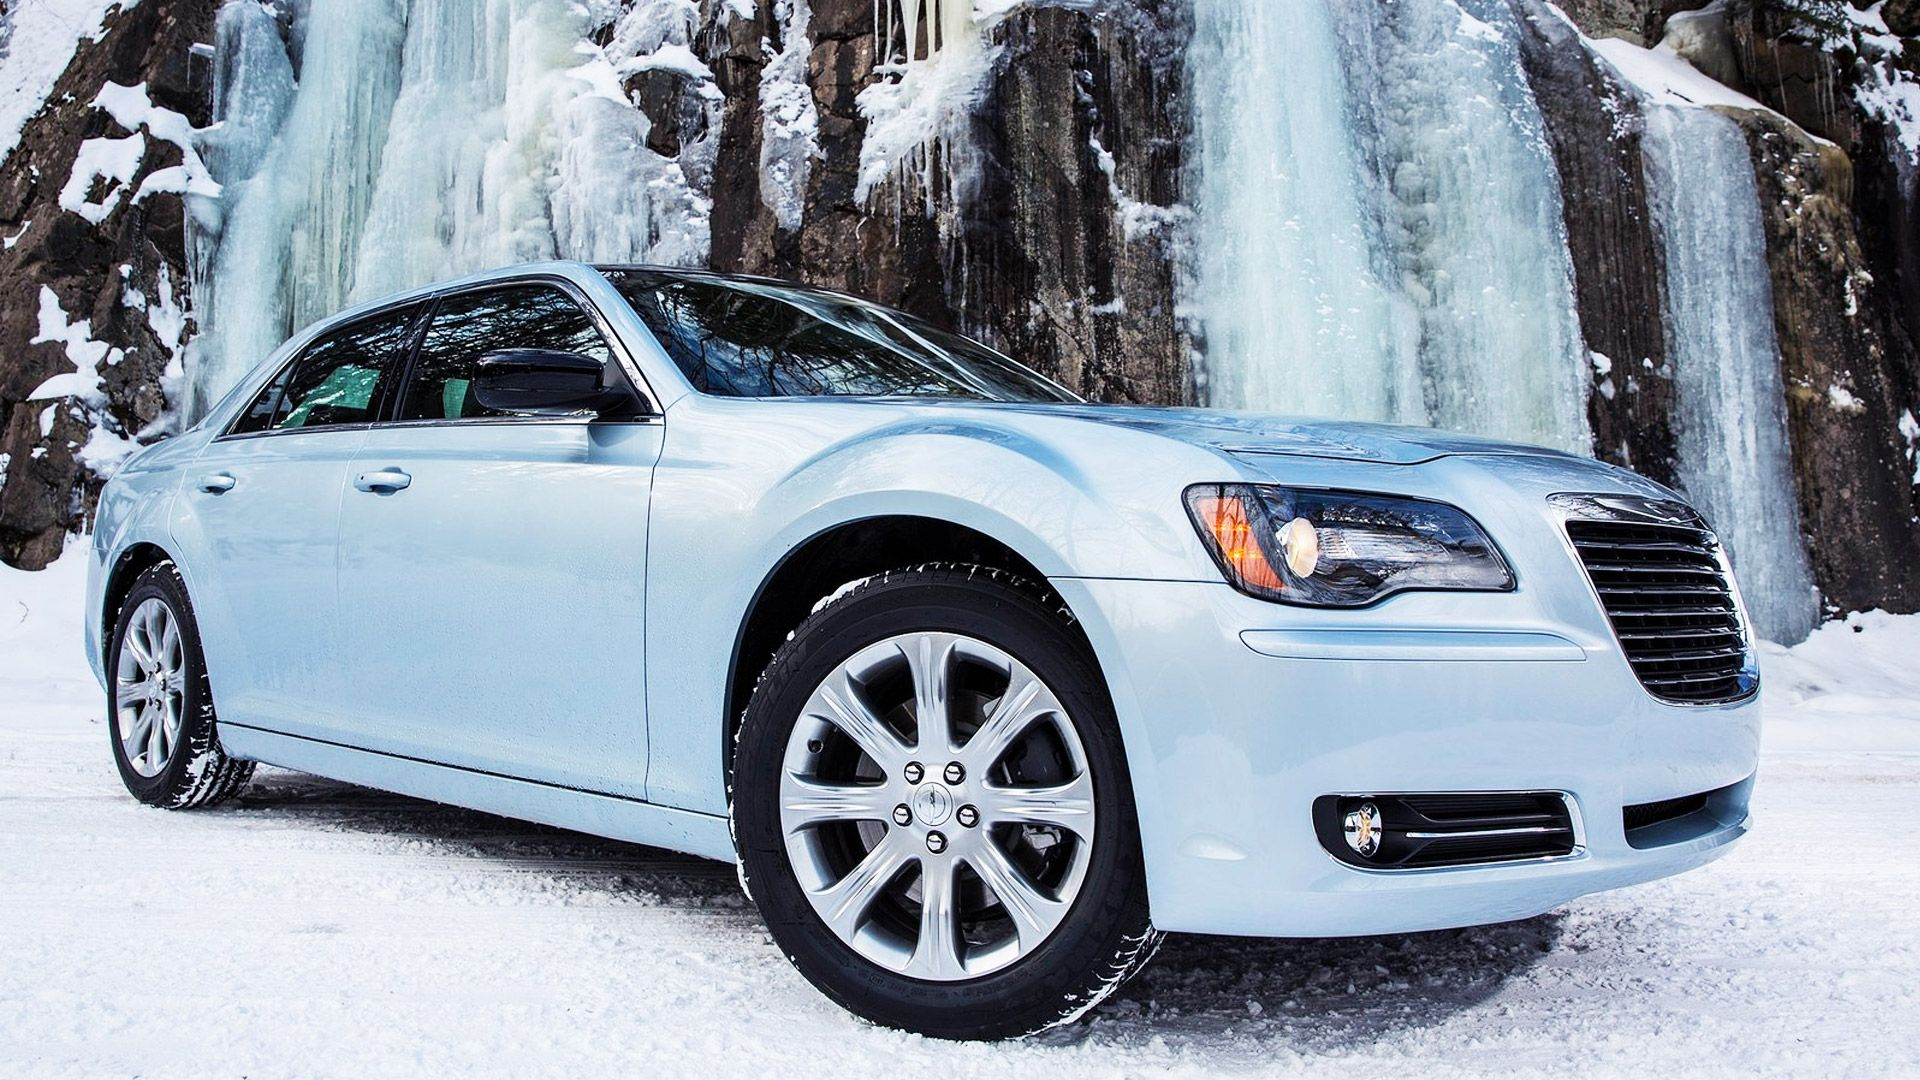 2013 Chrysler 300 Glacier Rims car review Chrysler 300